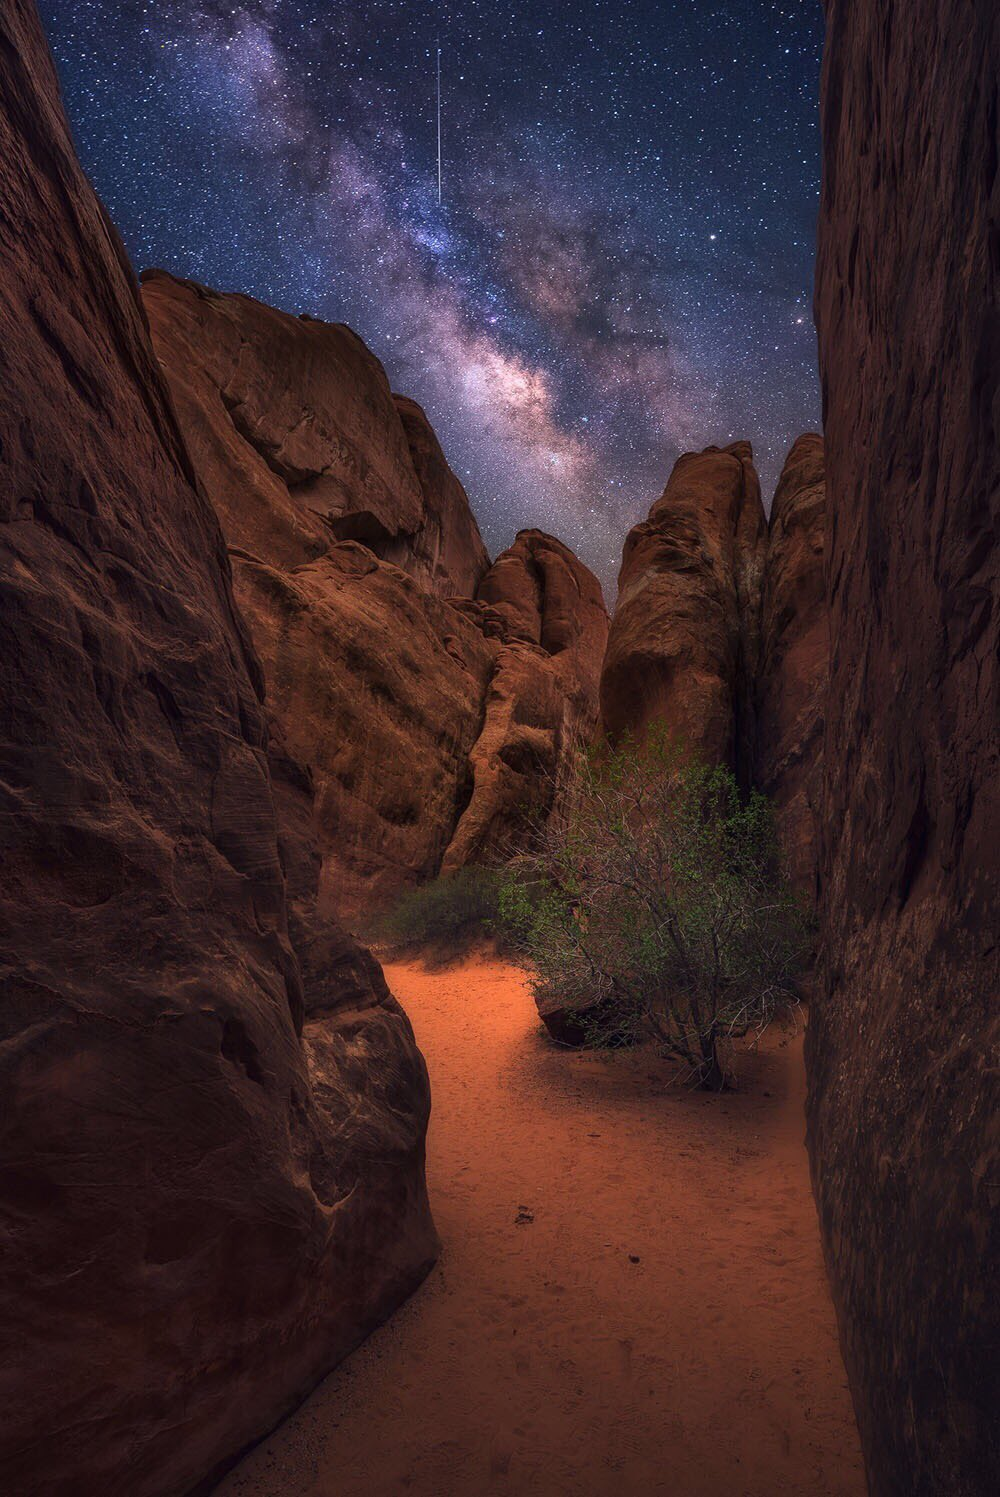 #MayThe4thBeWithYou! Here's an amazing Milky Way pic @ArchesNPS by Joshua Snow #Utah #StarWarsDay https://t.co/HWrSMNMqwV